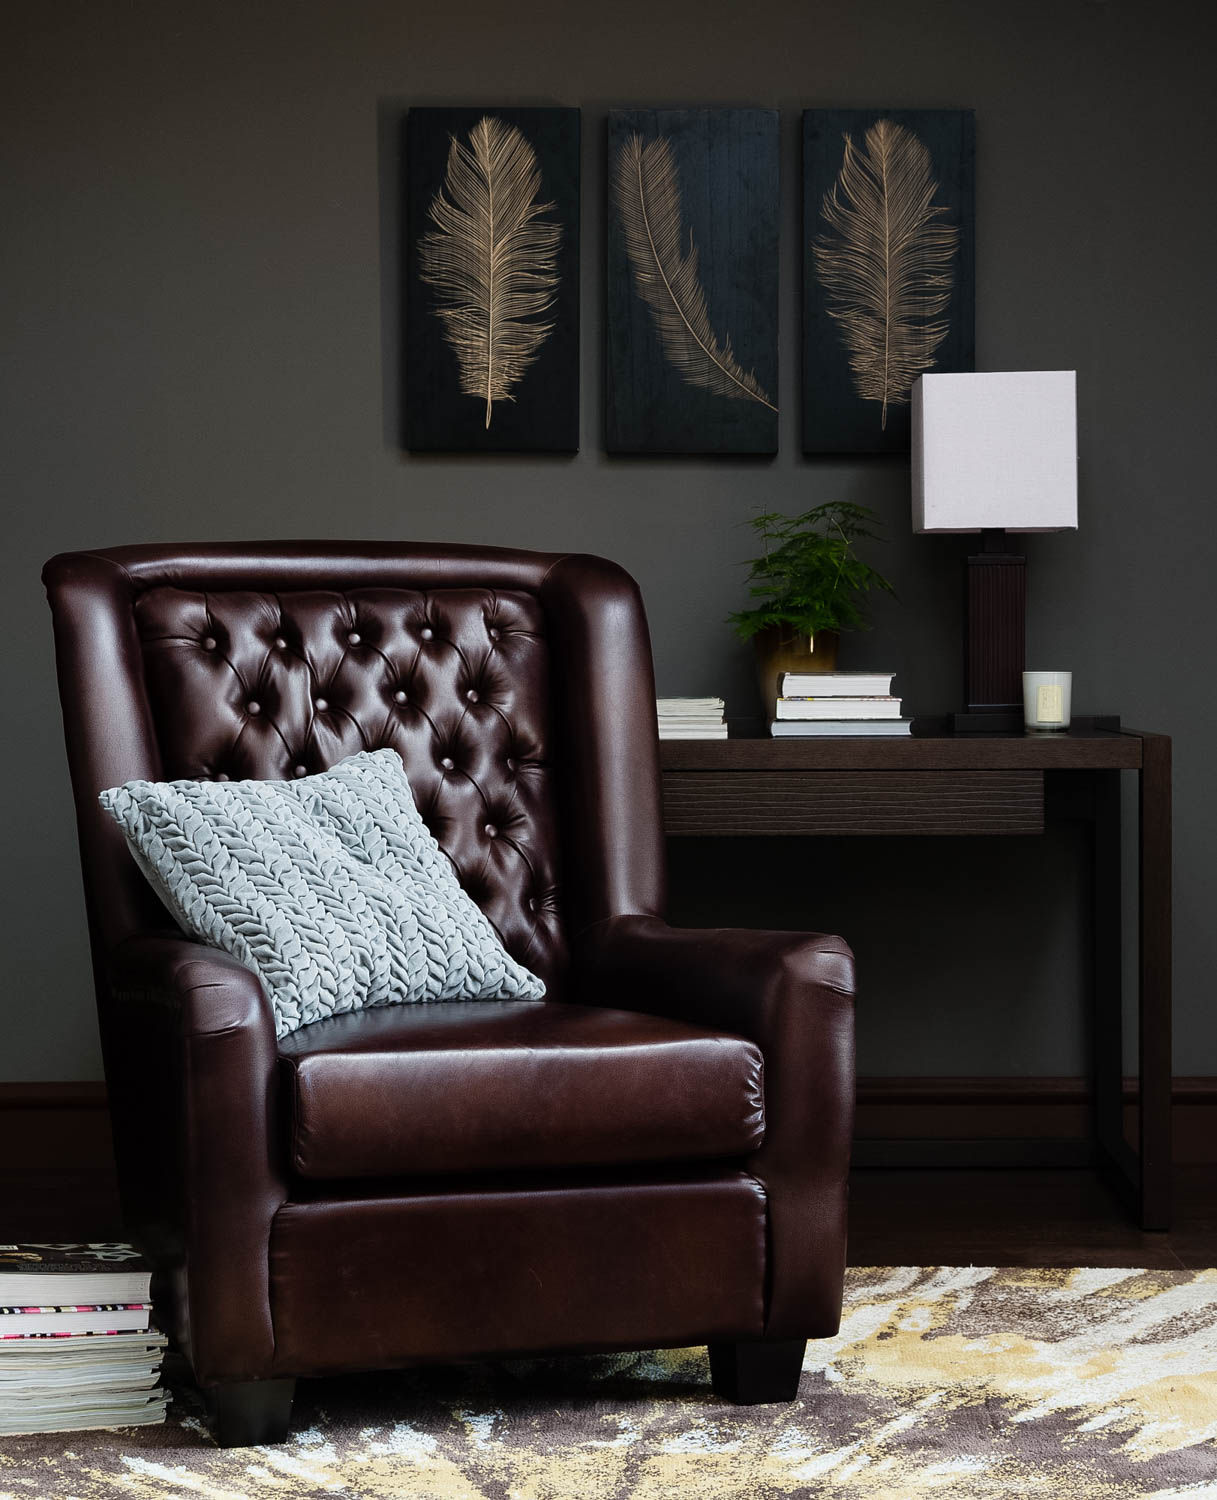 An interior vignette showing a leather armchair for Homecentre, Dubai